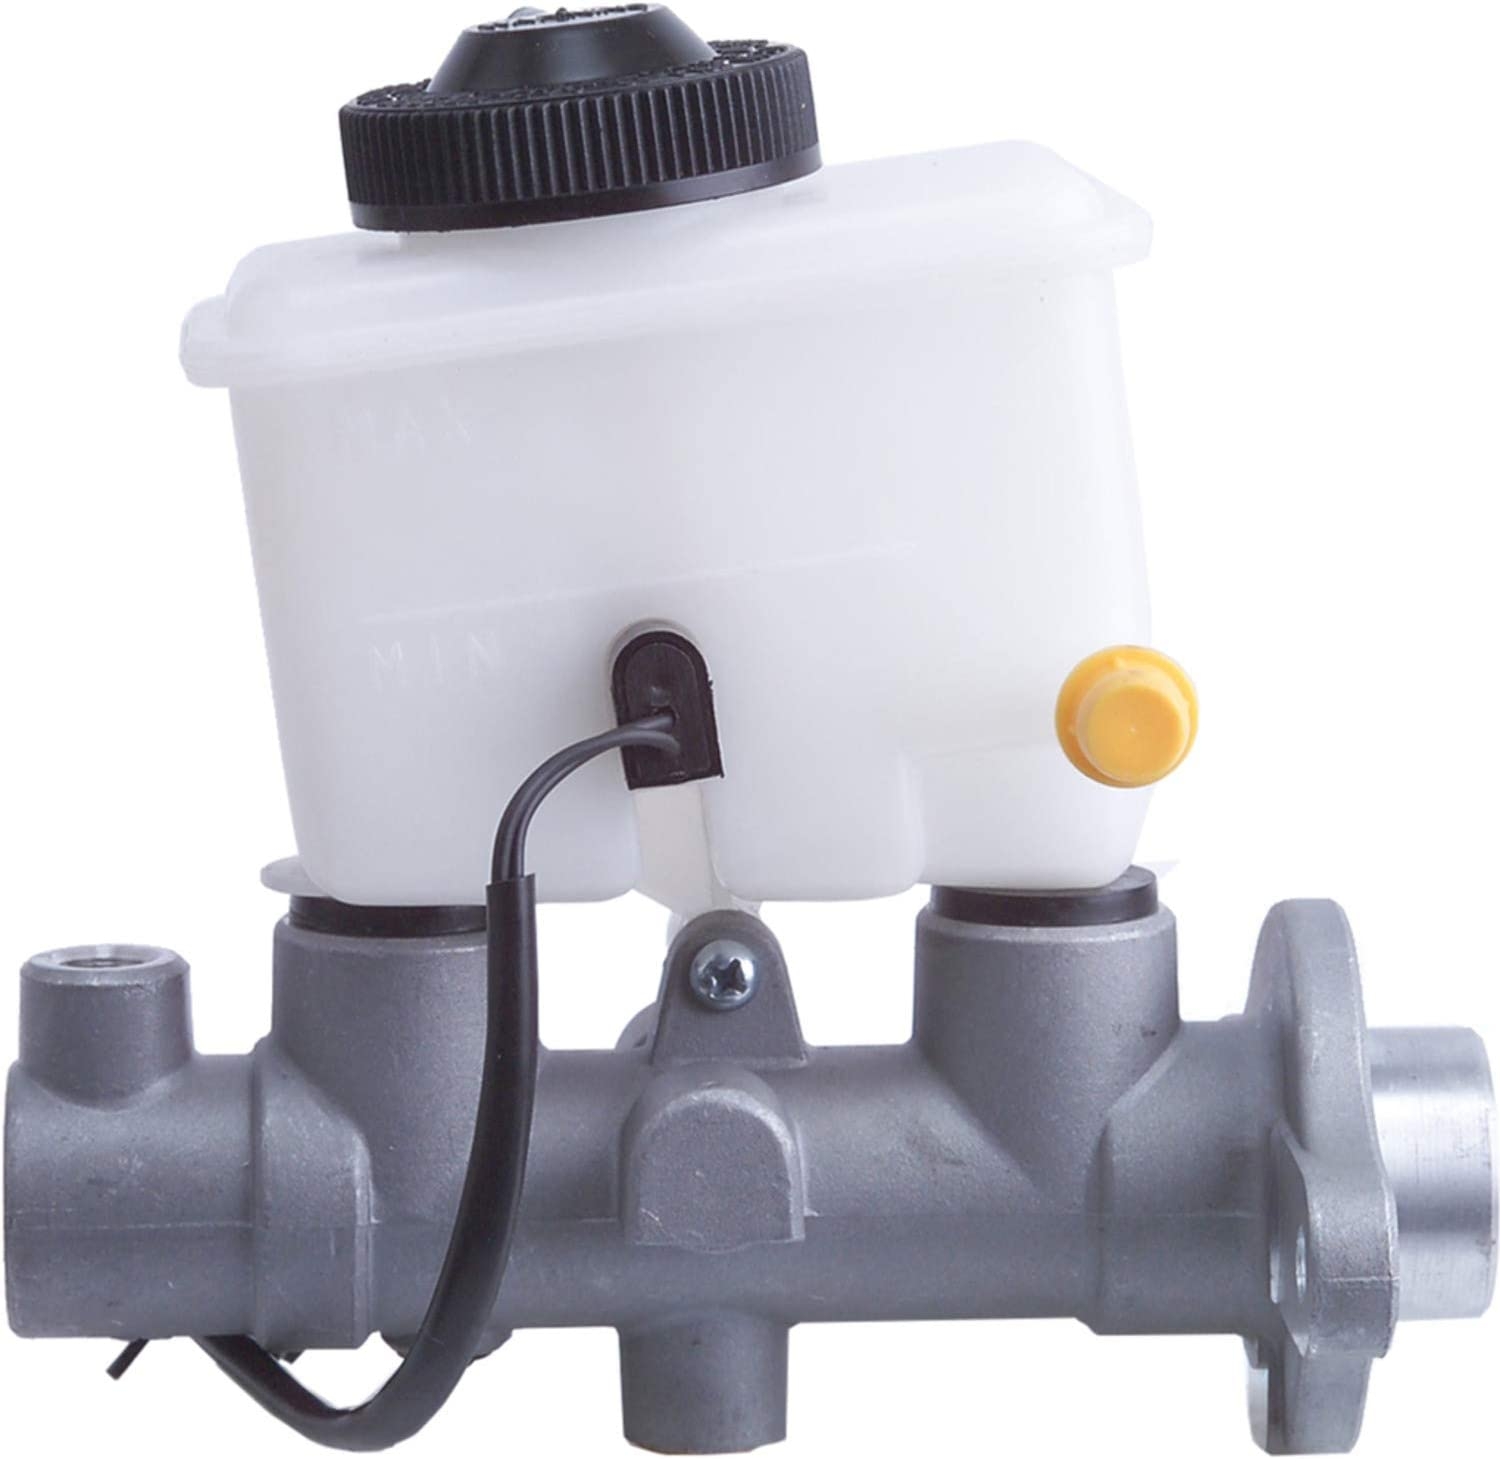 Cardone New products world's highest quality popular Max 72% OFF 13-2522 Brake Master Cylinder